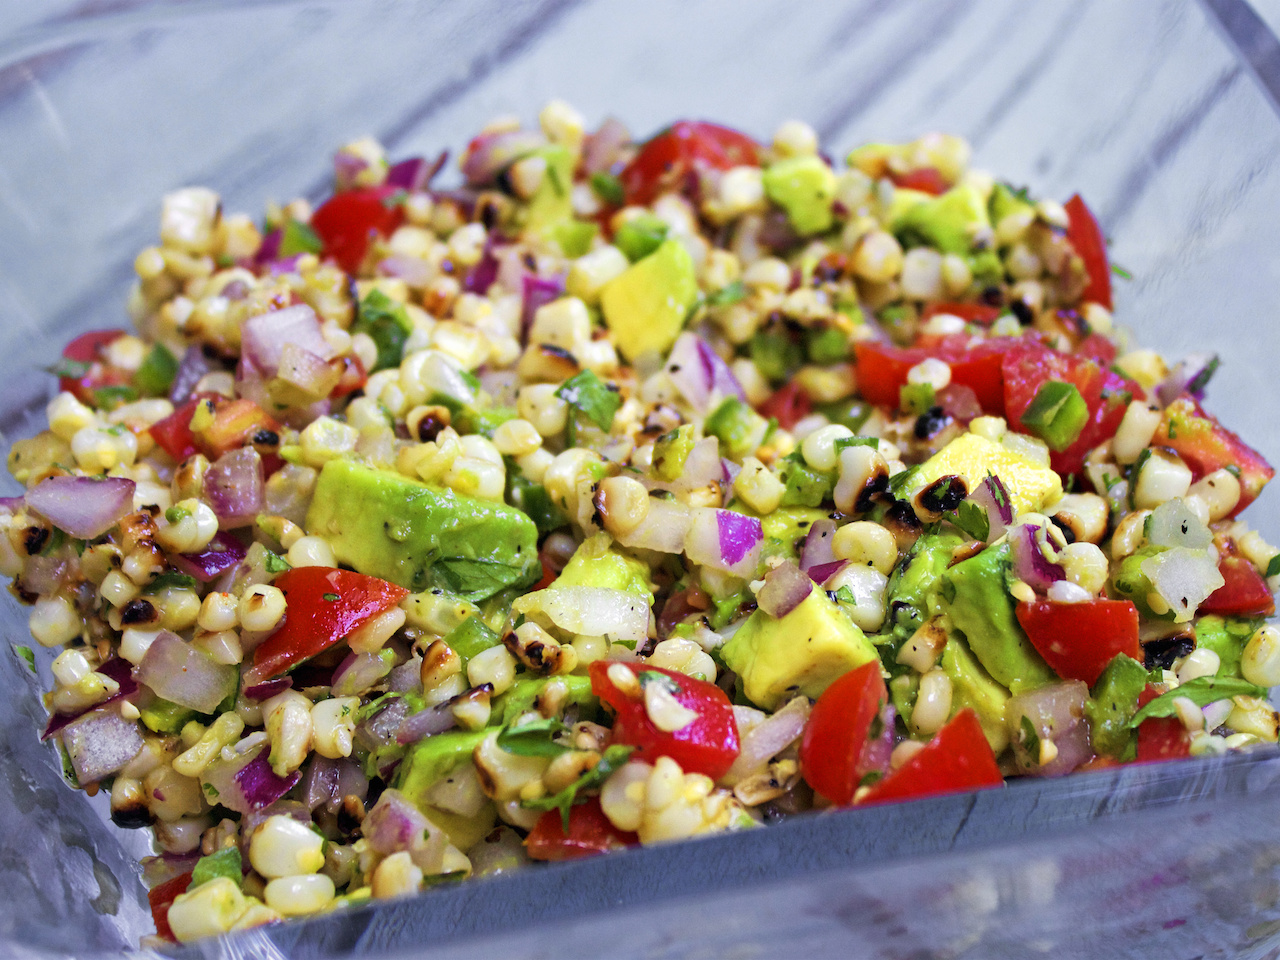 Tomato, corn, avocado and onion salad, done on the grill for maximum taste.